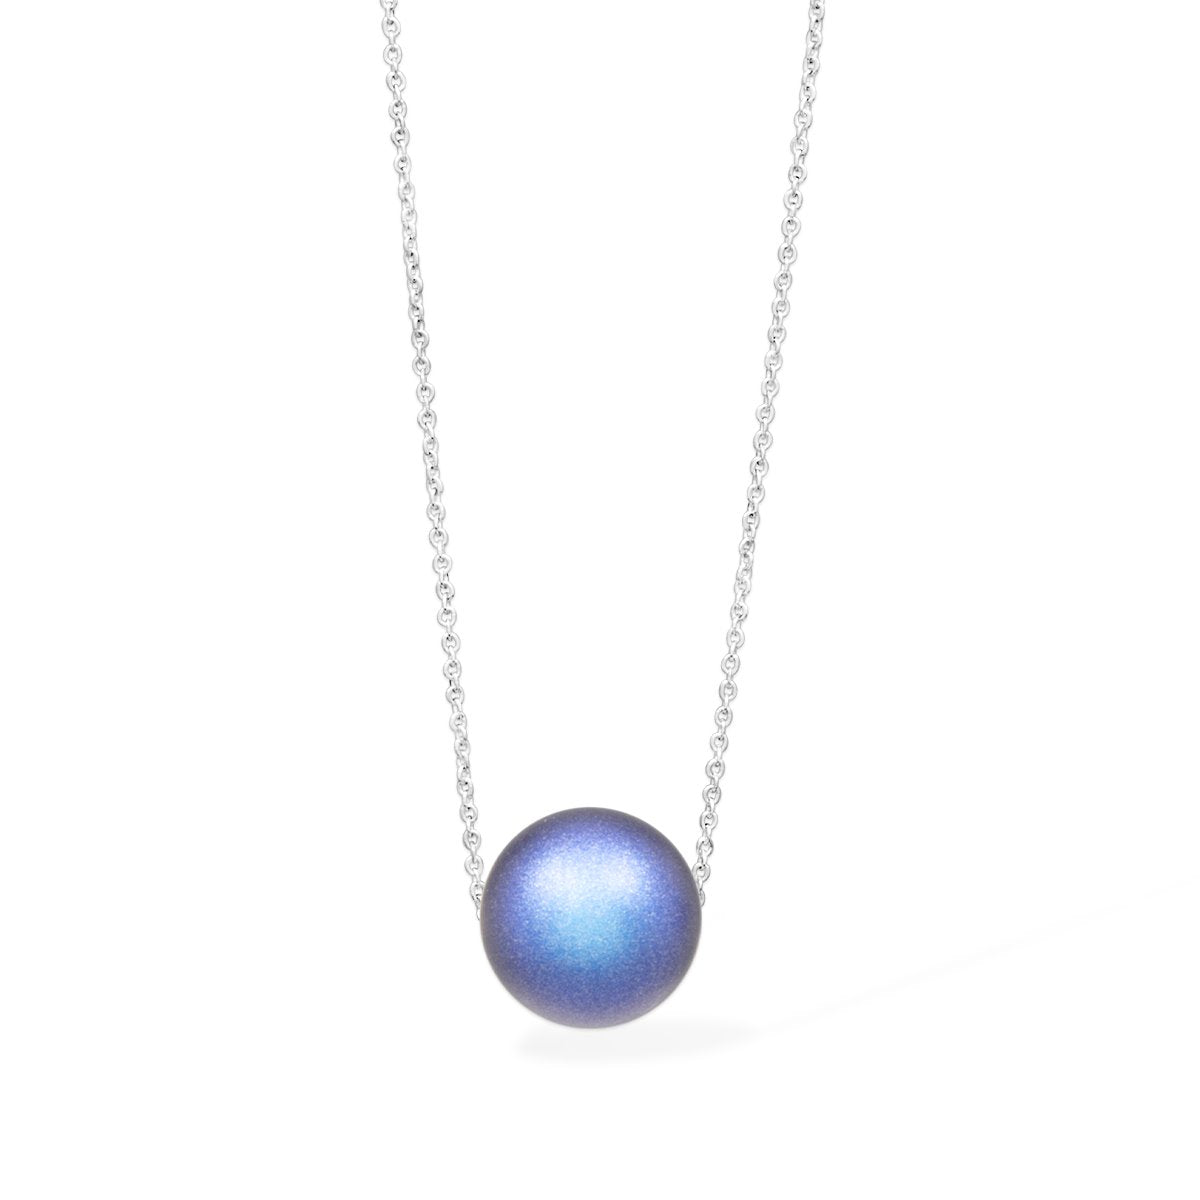 Gigi Pearl Necklace forevercrystals Sapphire Pearl